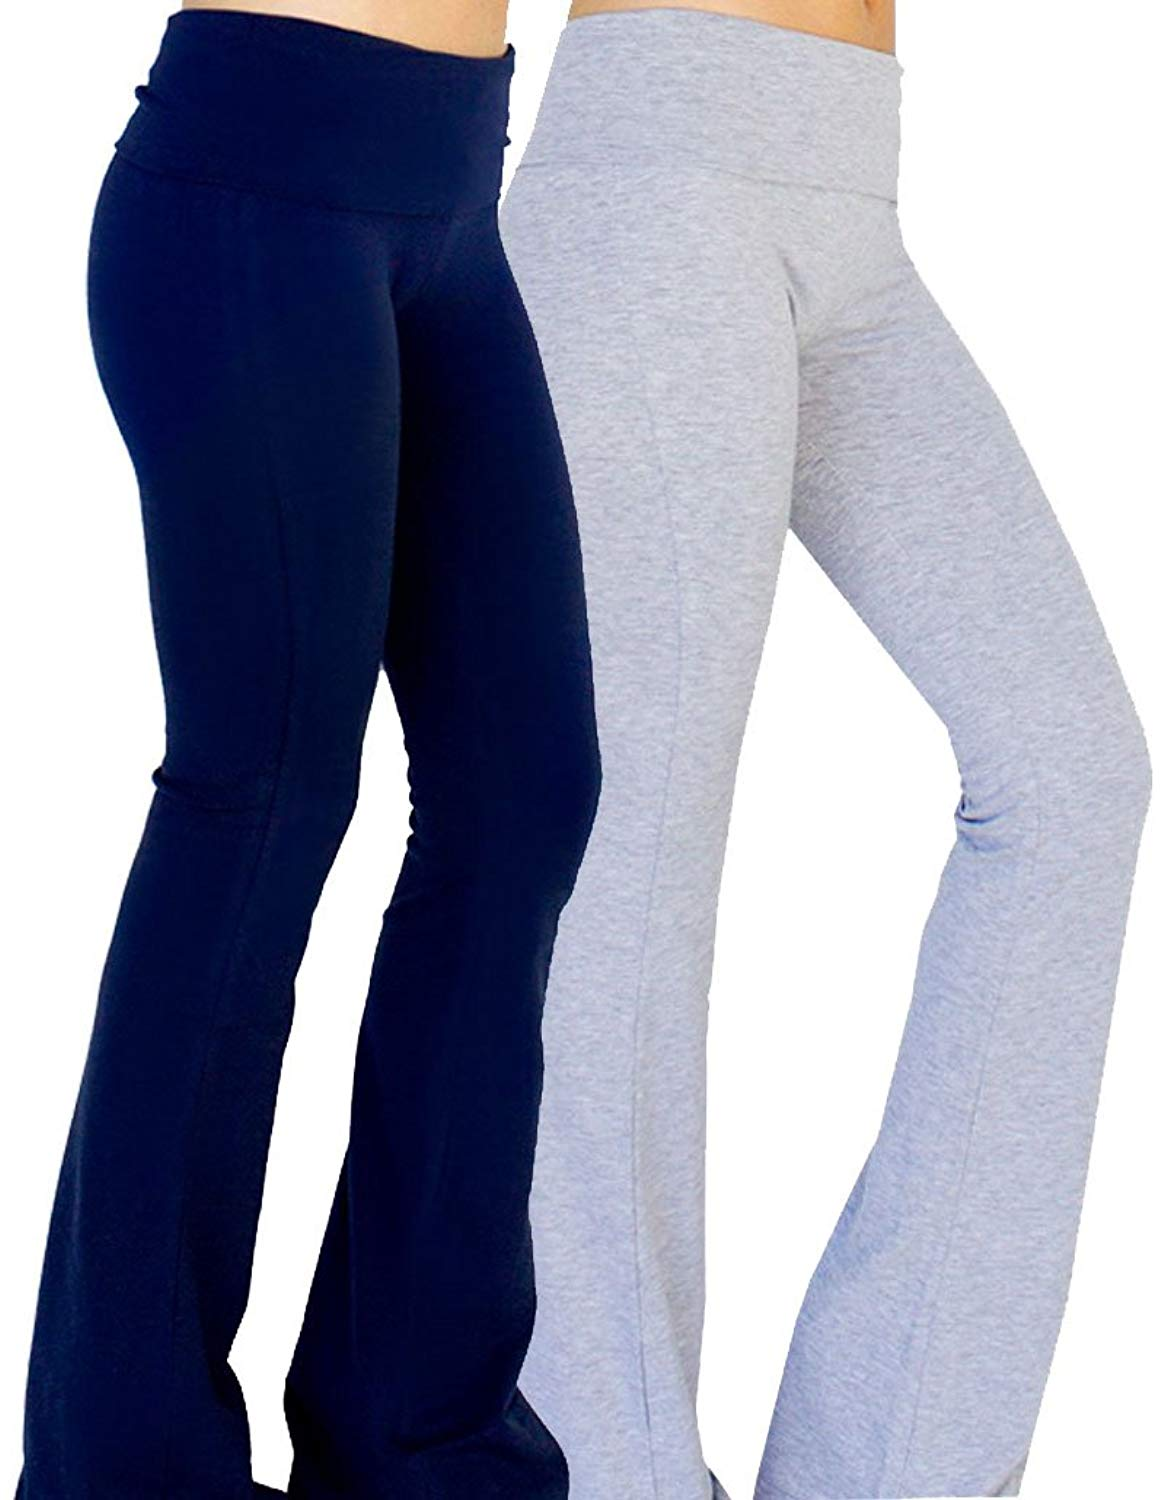 b0a2c6f77ce53 Get Quotations · Solid Foldover Solid Bootleg Flare Yoga Pants (Large, 2  Pack: Heather Grey &